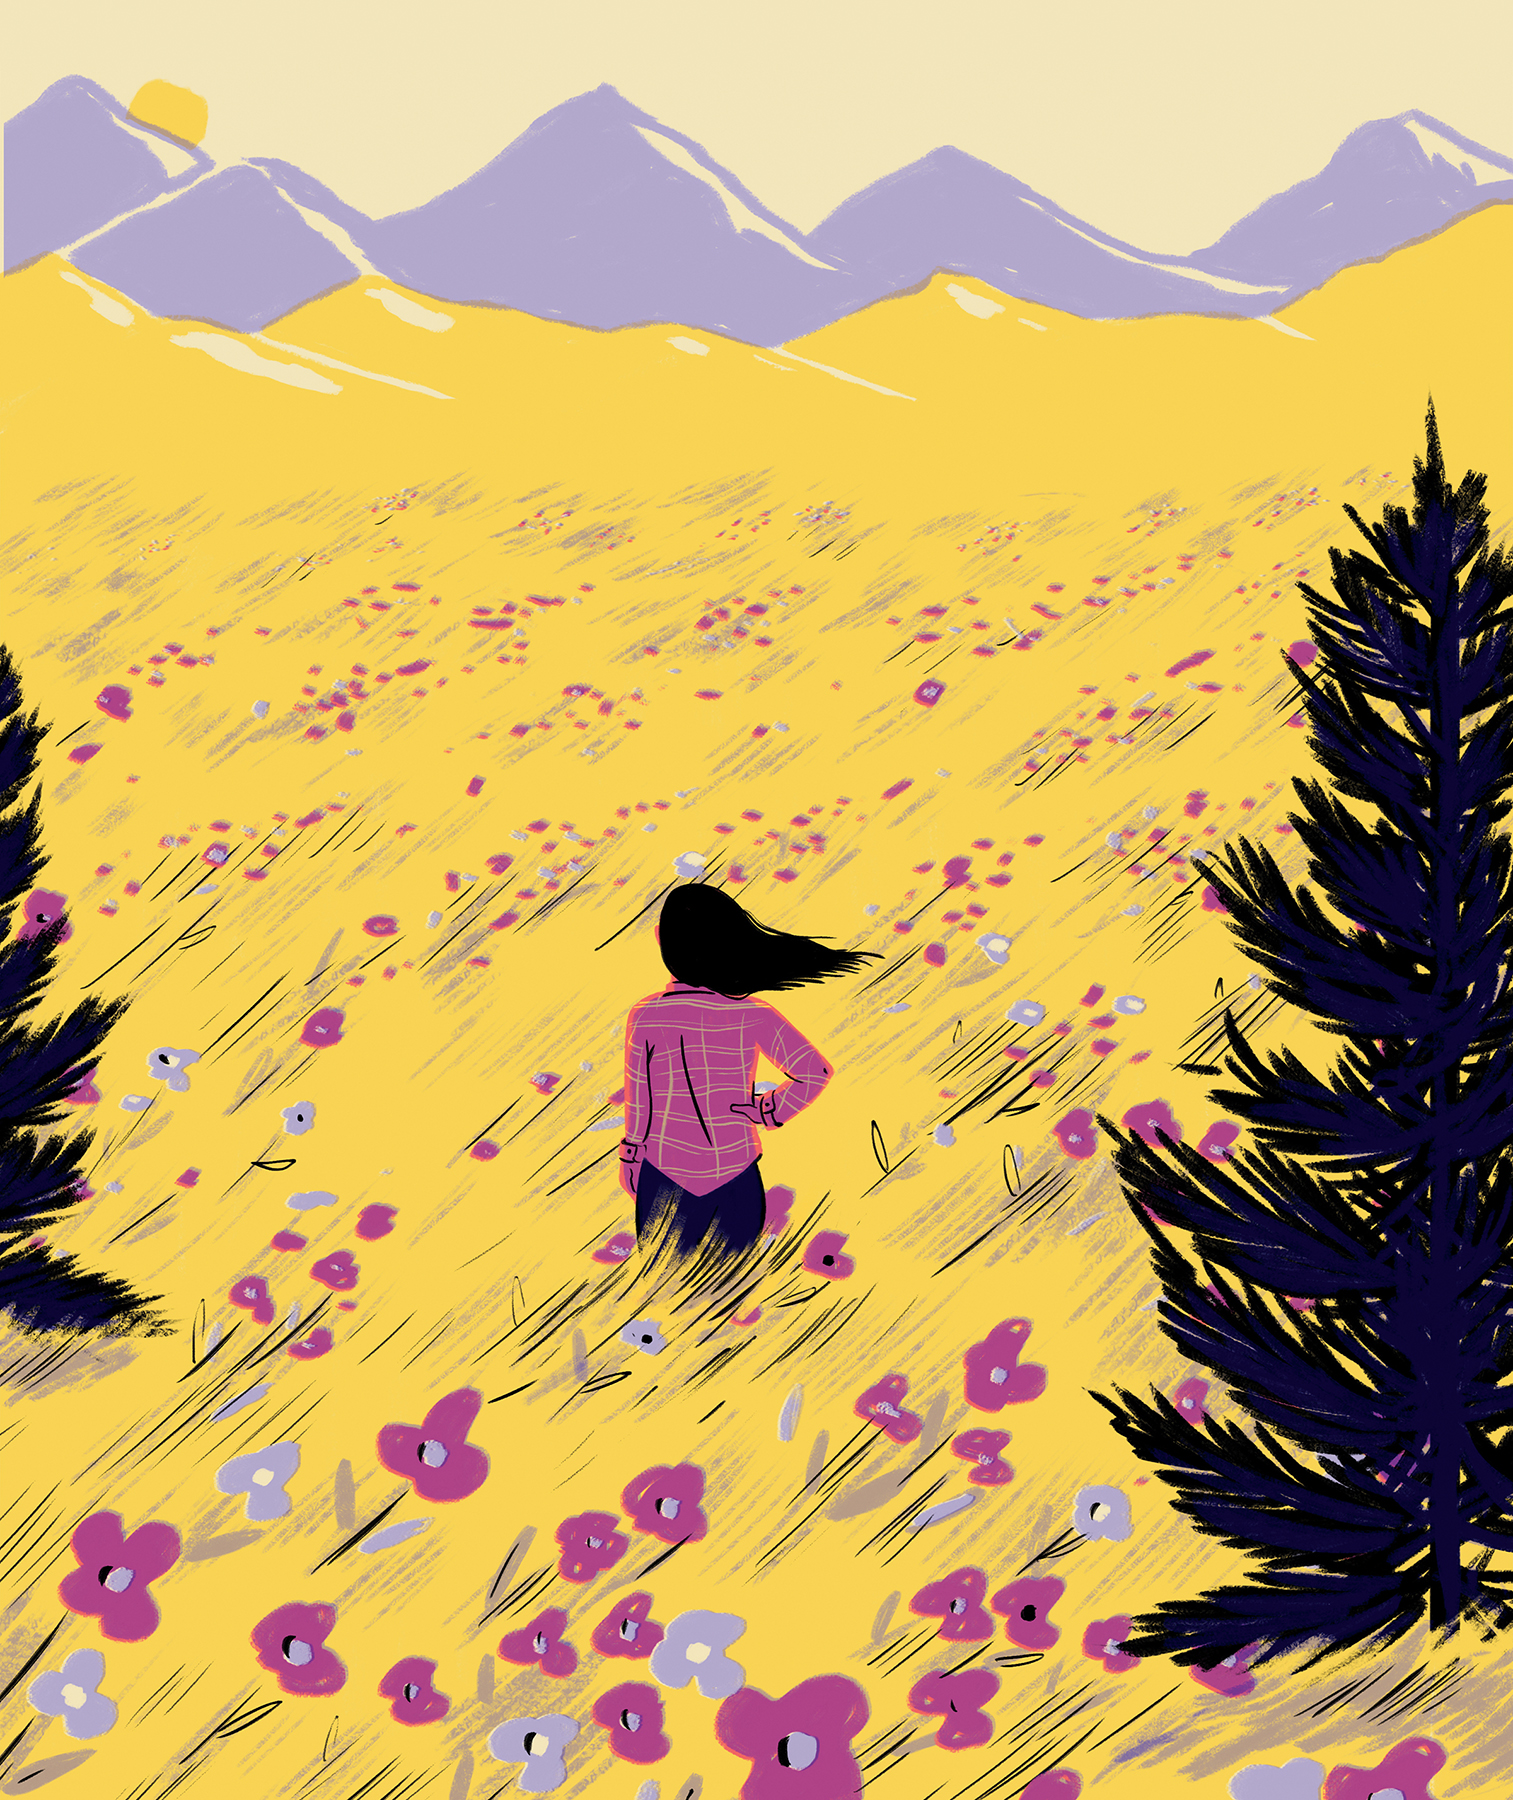 Illustration: Woman in field of flowers